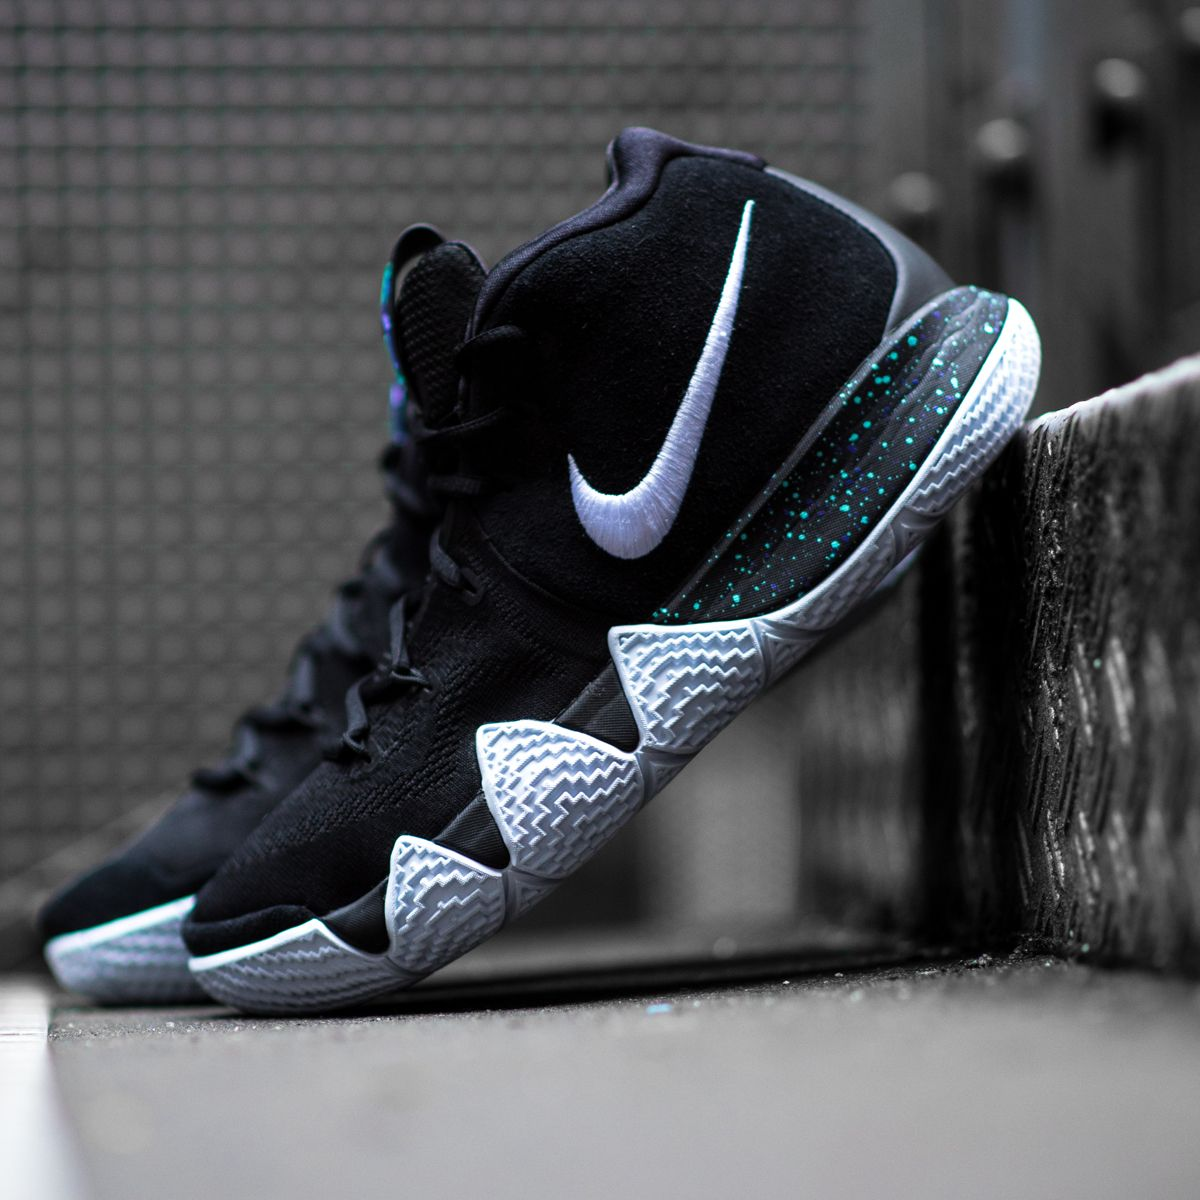 reputable site 0ed0a cc437 Kyrie s got some new shoes! Get the Nike Kyrie 4  Black Ice  now on  KICKZ.com and in selected stores!